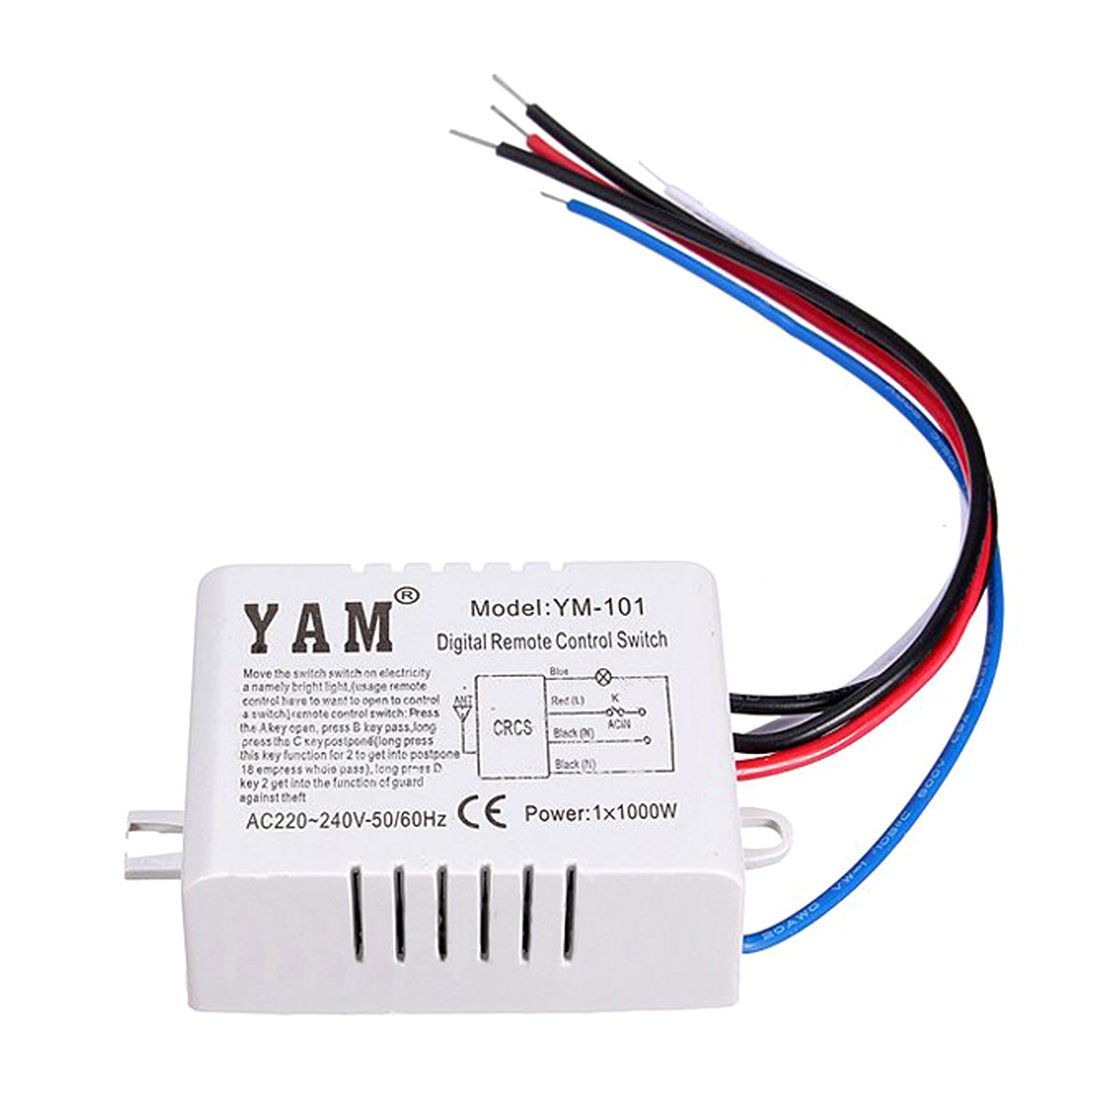 61986scgpNL._SL1100_ lamp remote control switch yam ac 220v wireless light lamp yam ym 101 wiring diagram at n-0.co